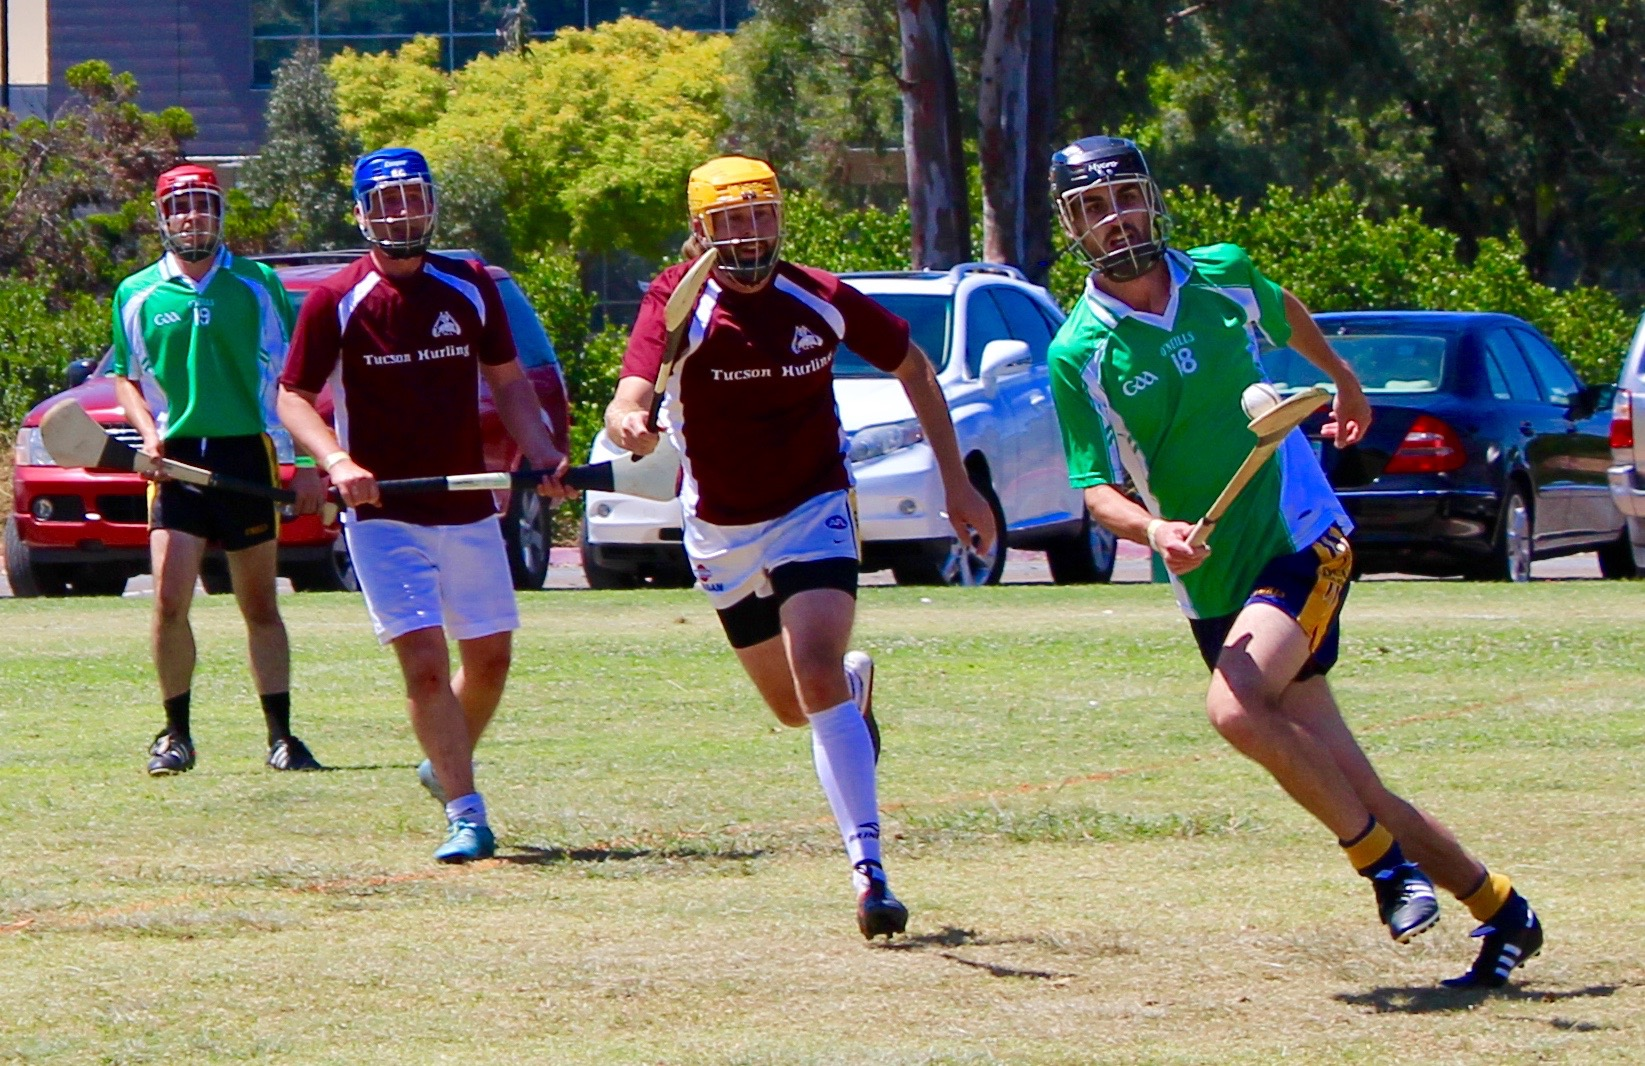 west coast sevens hurling oc wild geese vs tucson 22